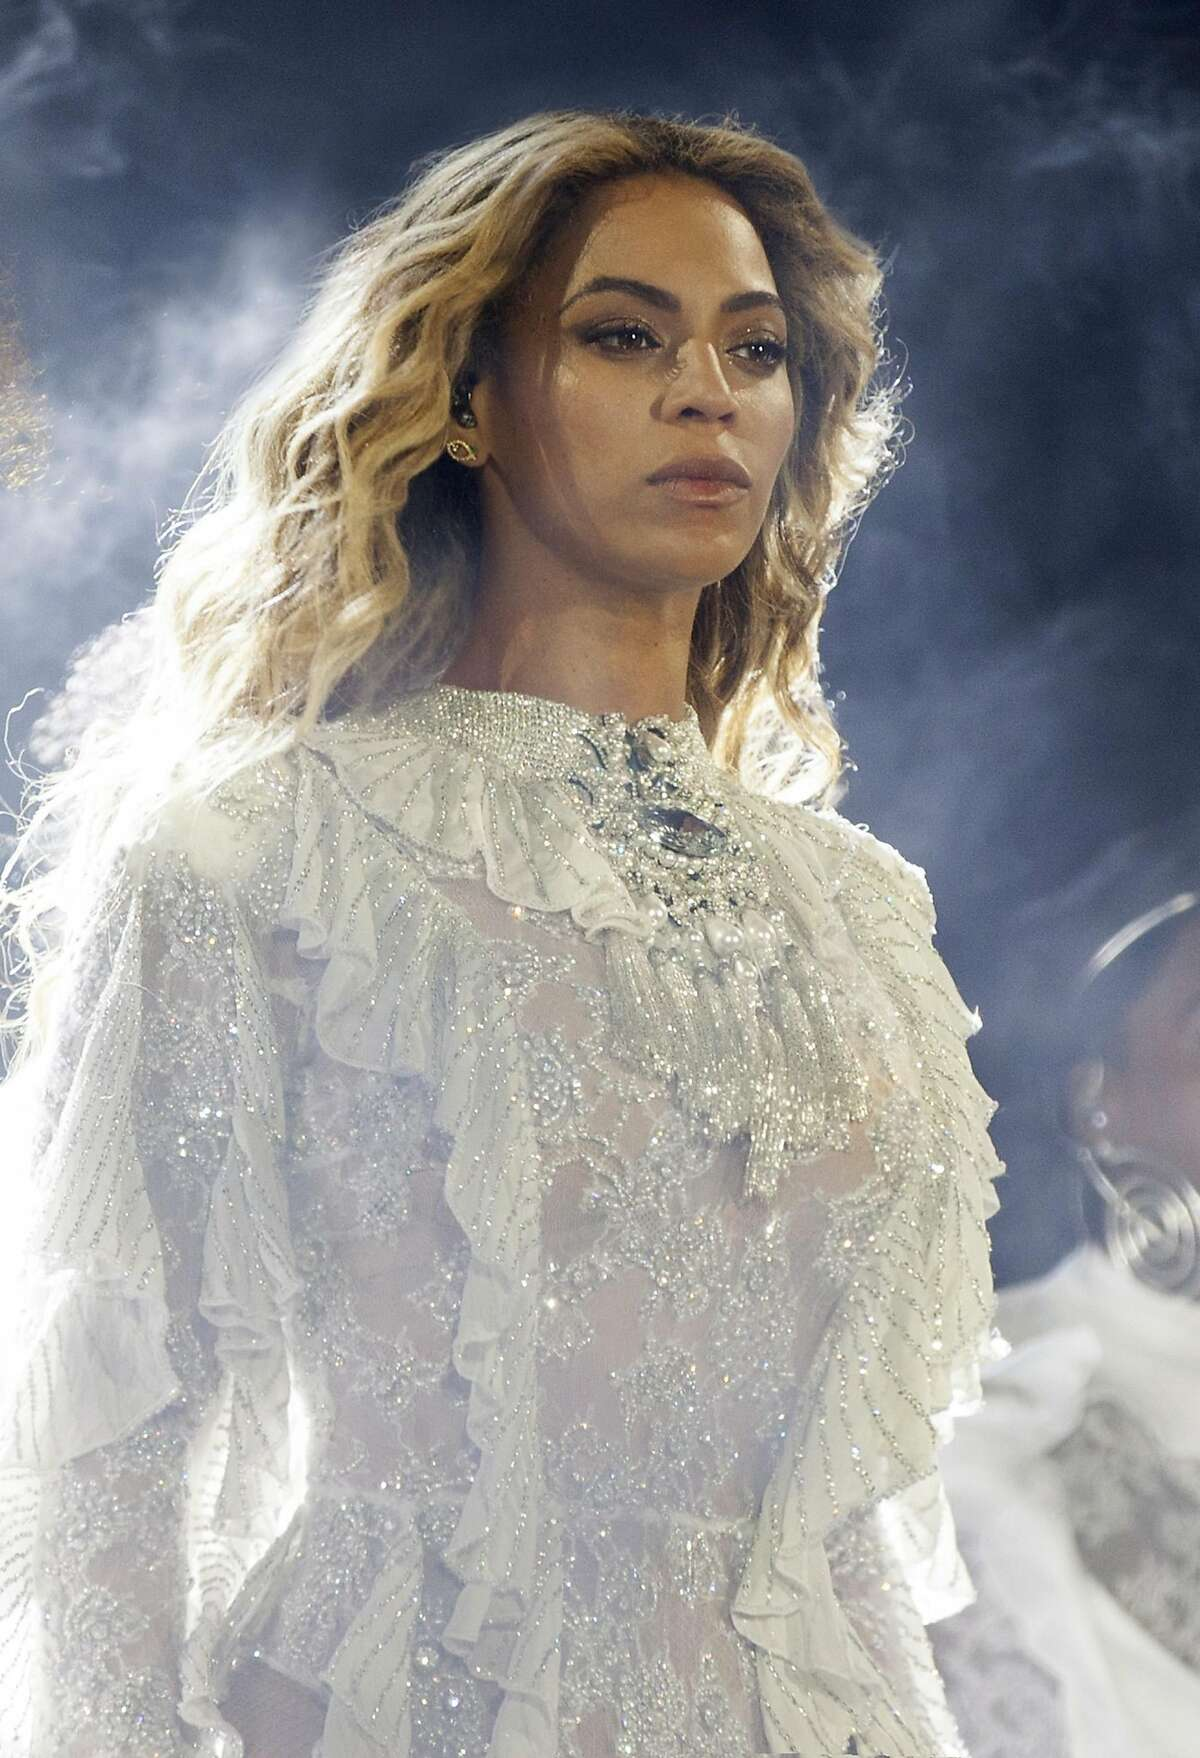 Beyonce performs during the Formation World Tour at Levi's Stadium on Monday, May 16, 2016, in Santa Clara, California.